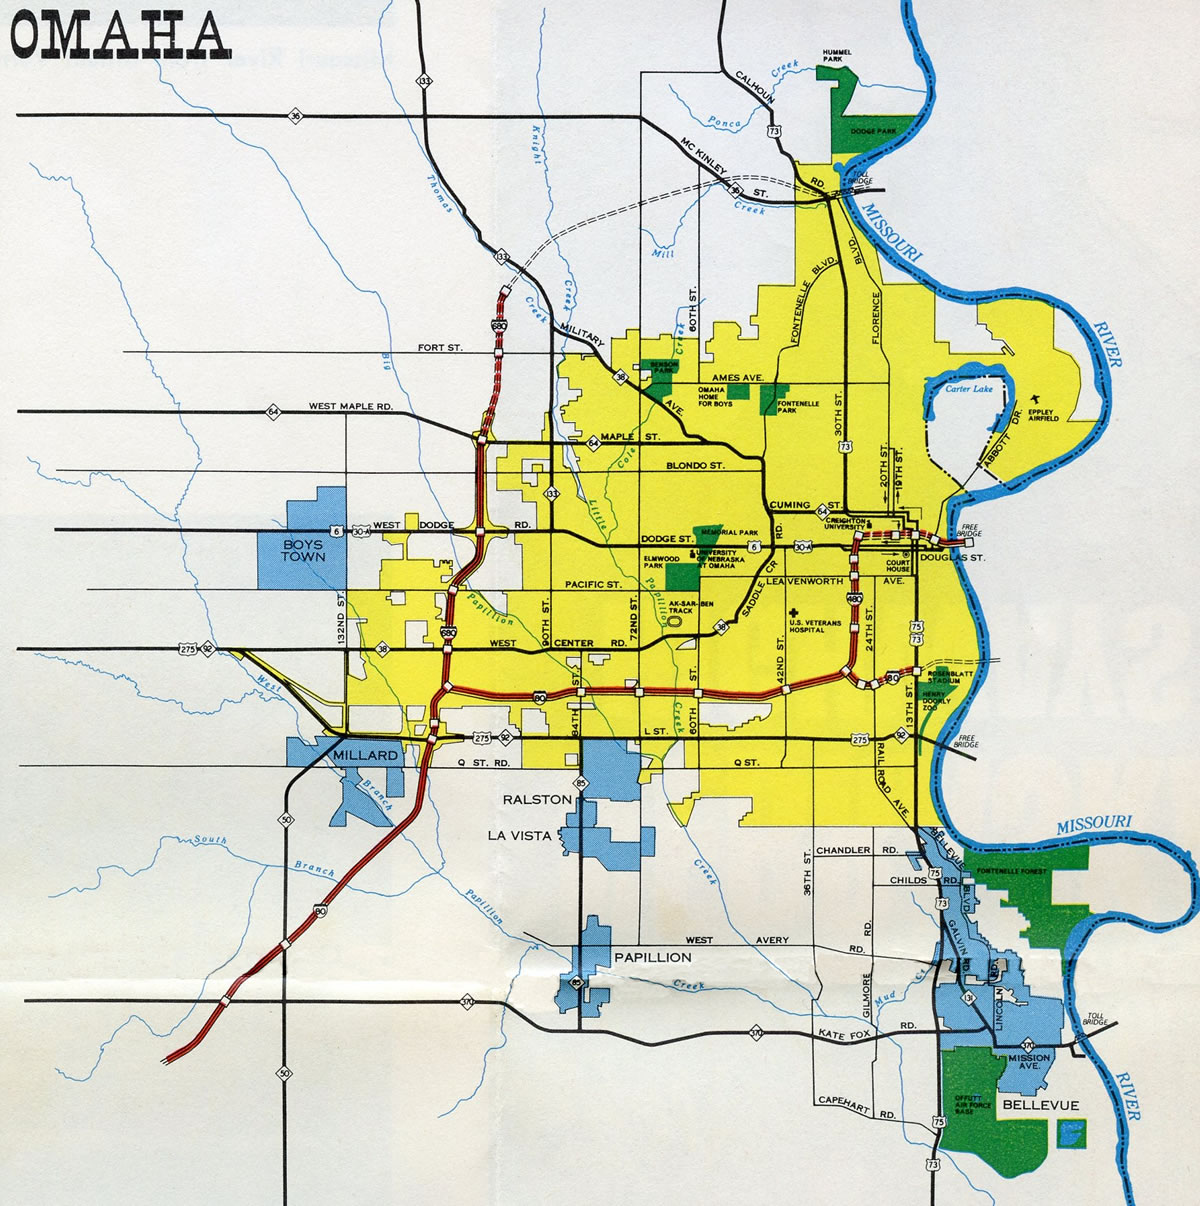 Omaha - 1969 Nebraska Official Highway Map